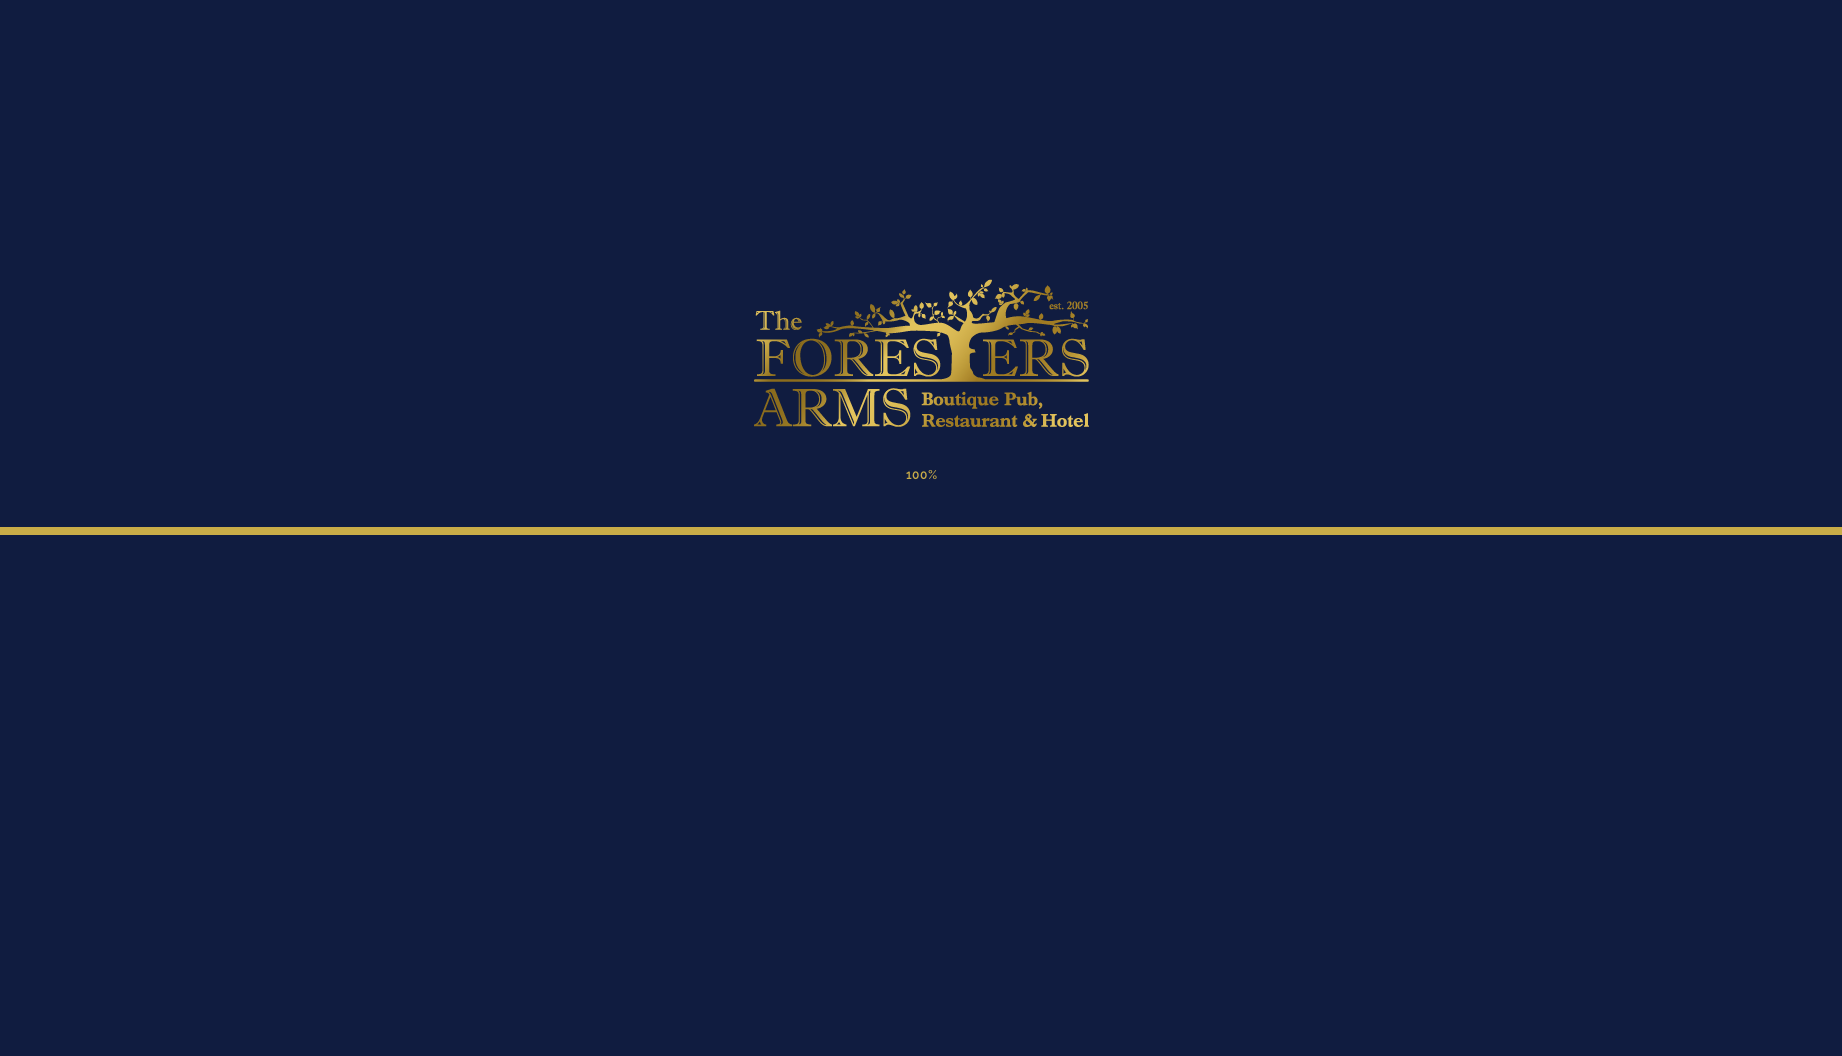 Loading page from the foresters website